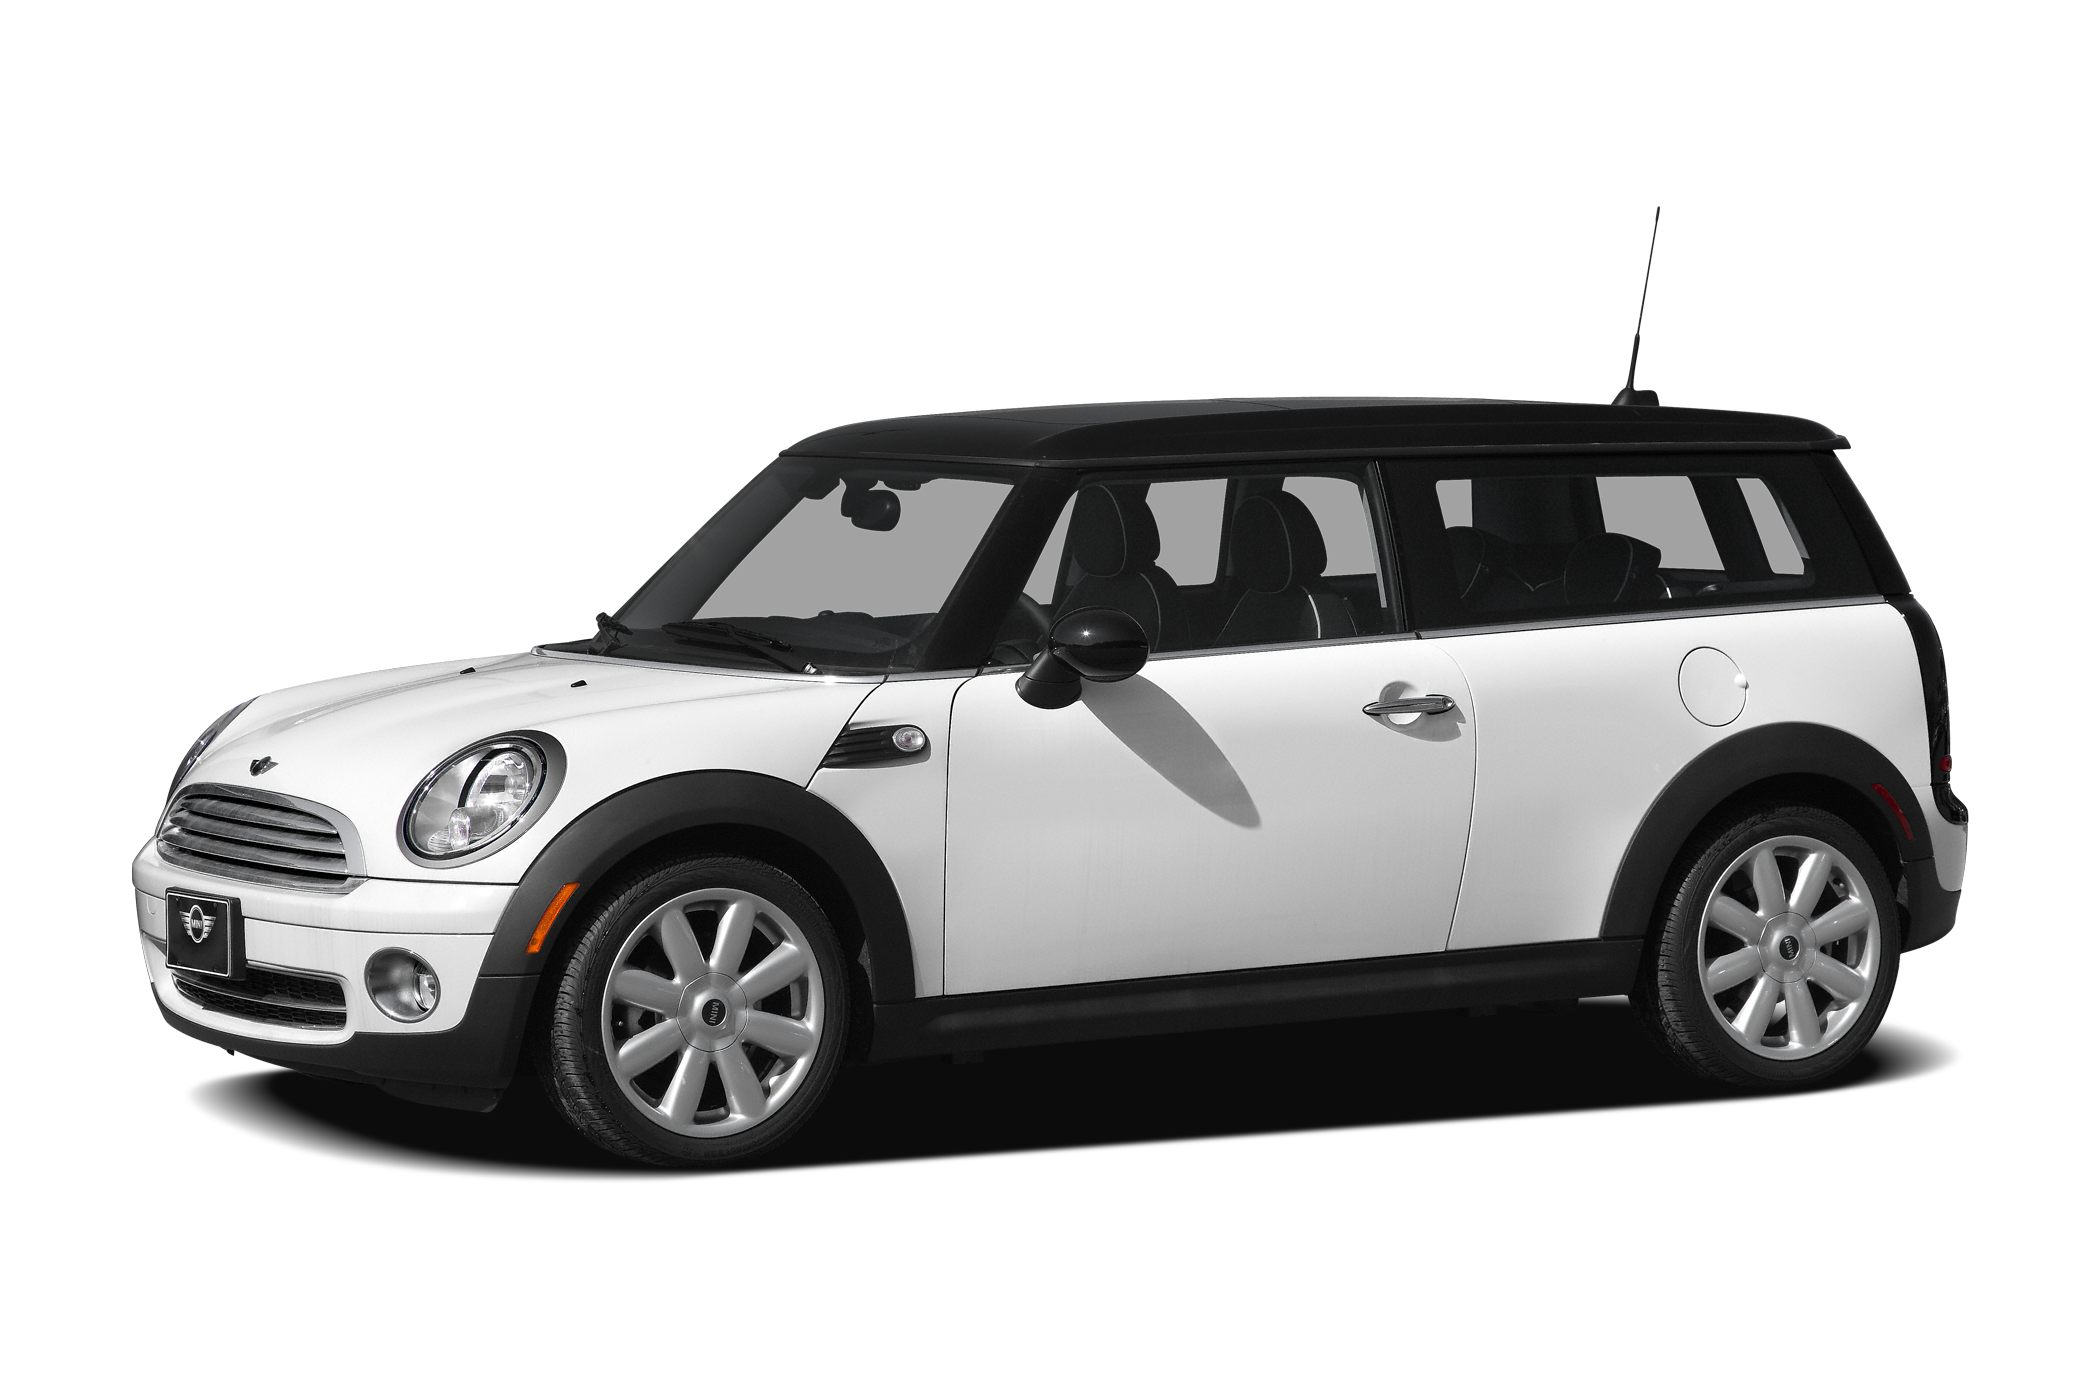 2010 MINI Cooper Clubman Wagon for sale in Los Angeles for $12,995 with 54,372 miles